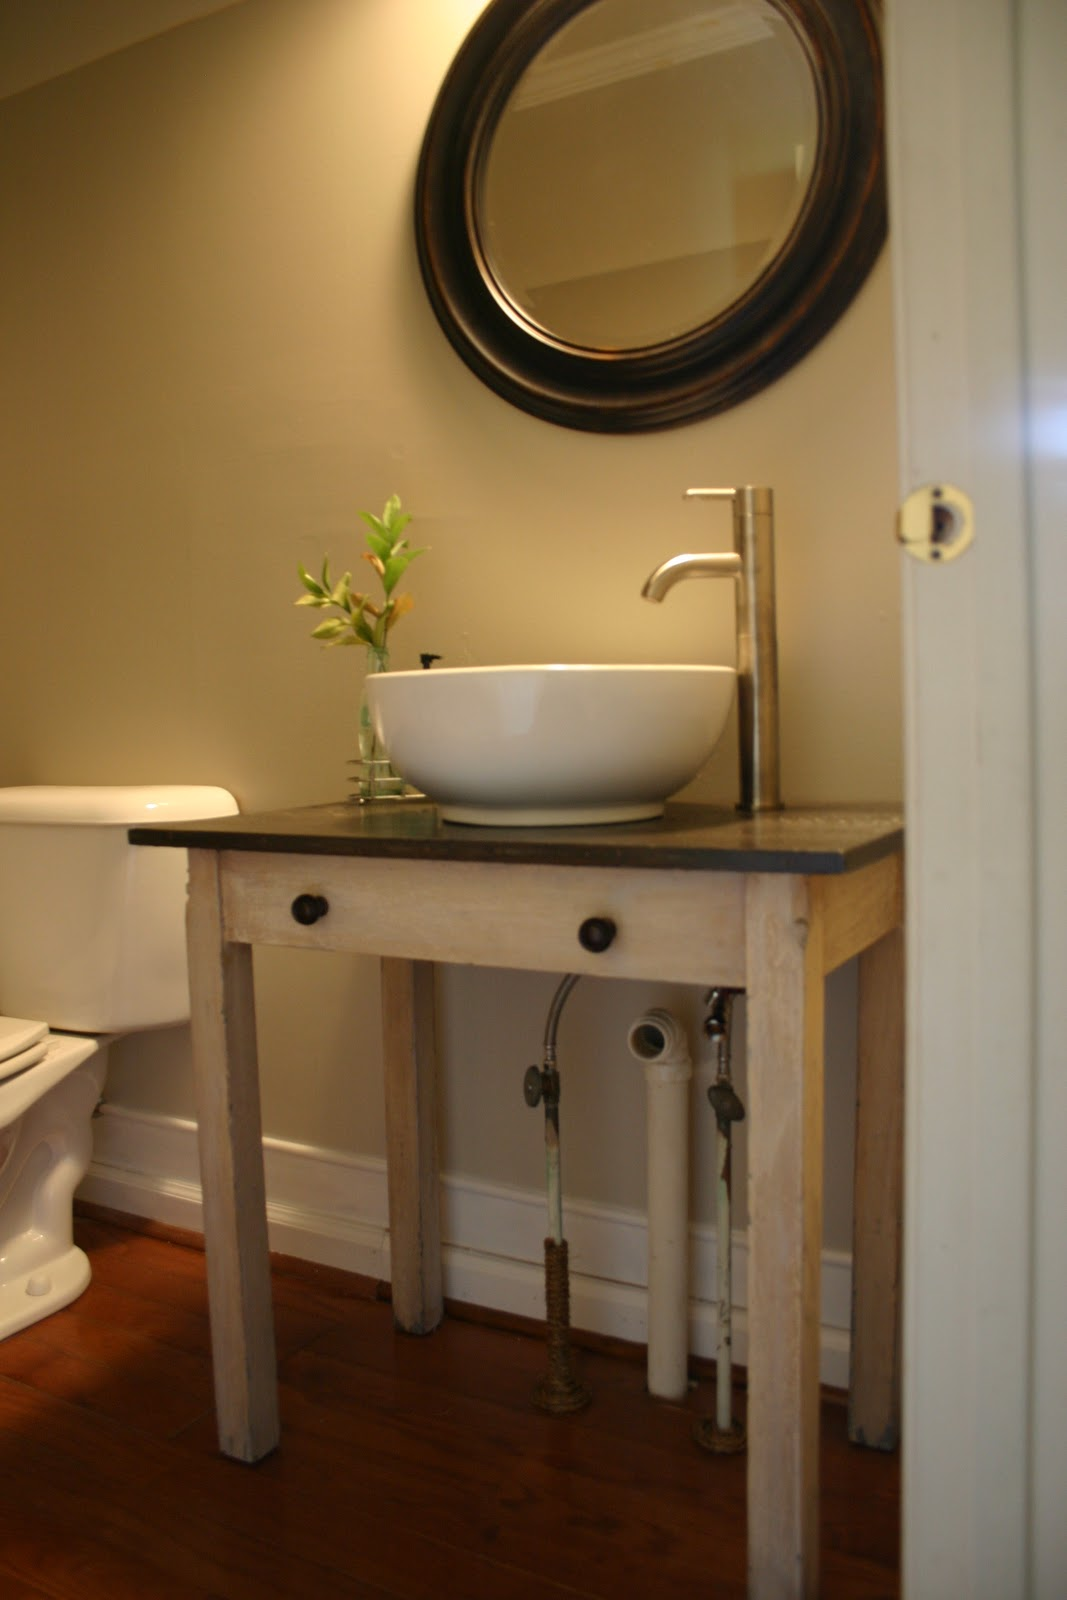 How To Hide Ugly Pipes Under Bathroom Sink Sink Ideas